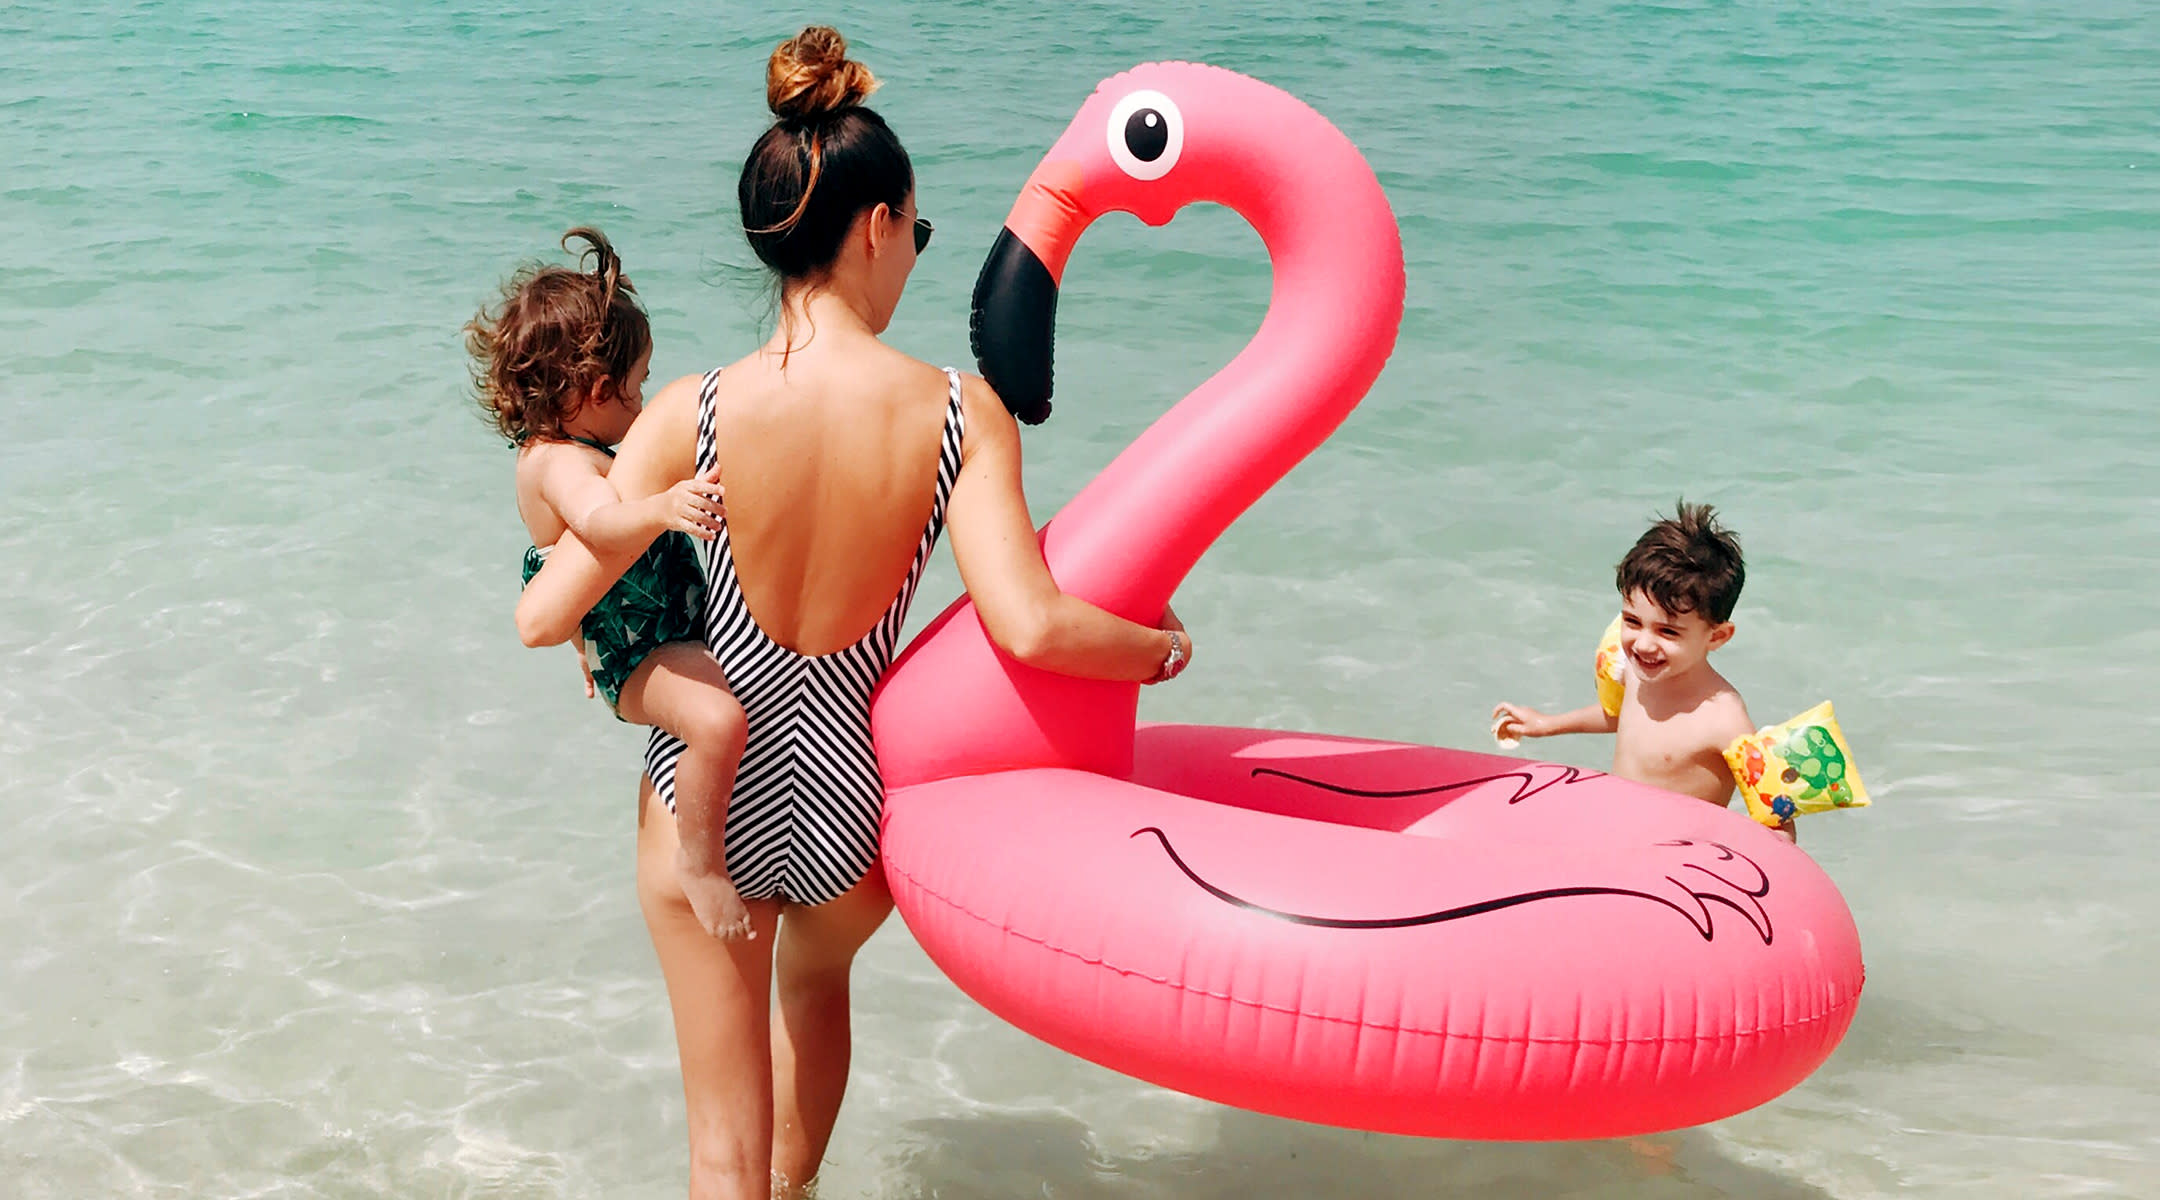 mom at beach traveling with her two young kids and holding a flamingo float